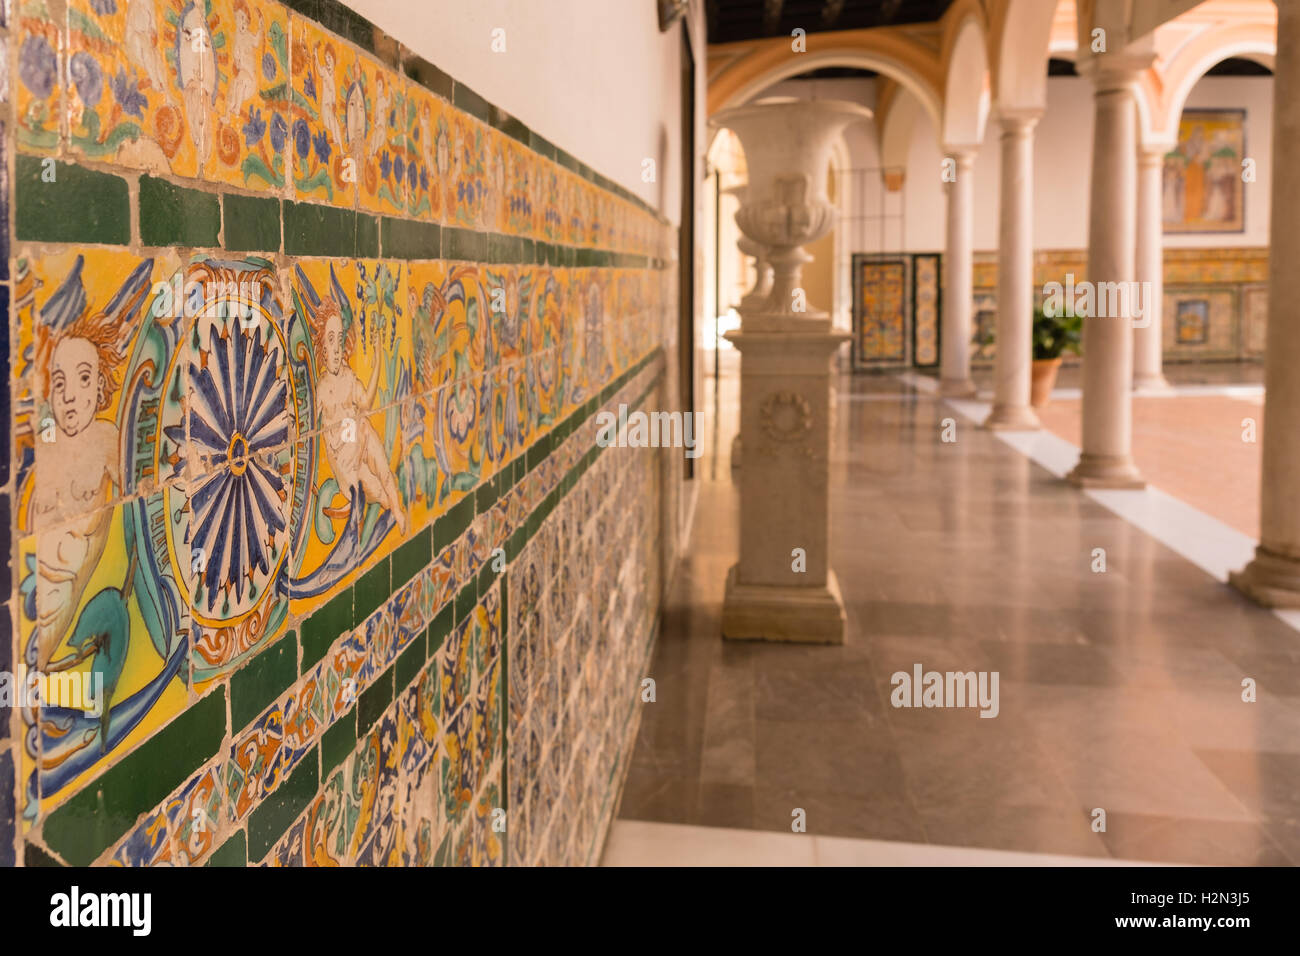 Decoratively painted tiles in Seville city museum - Stock Image